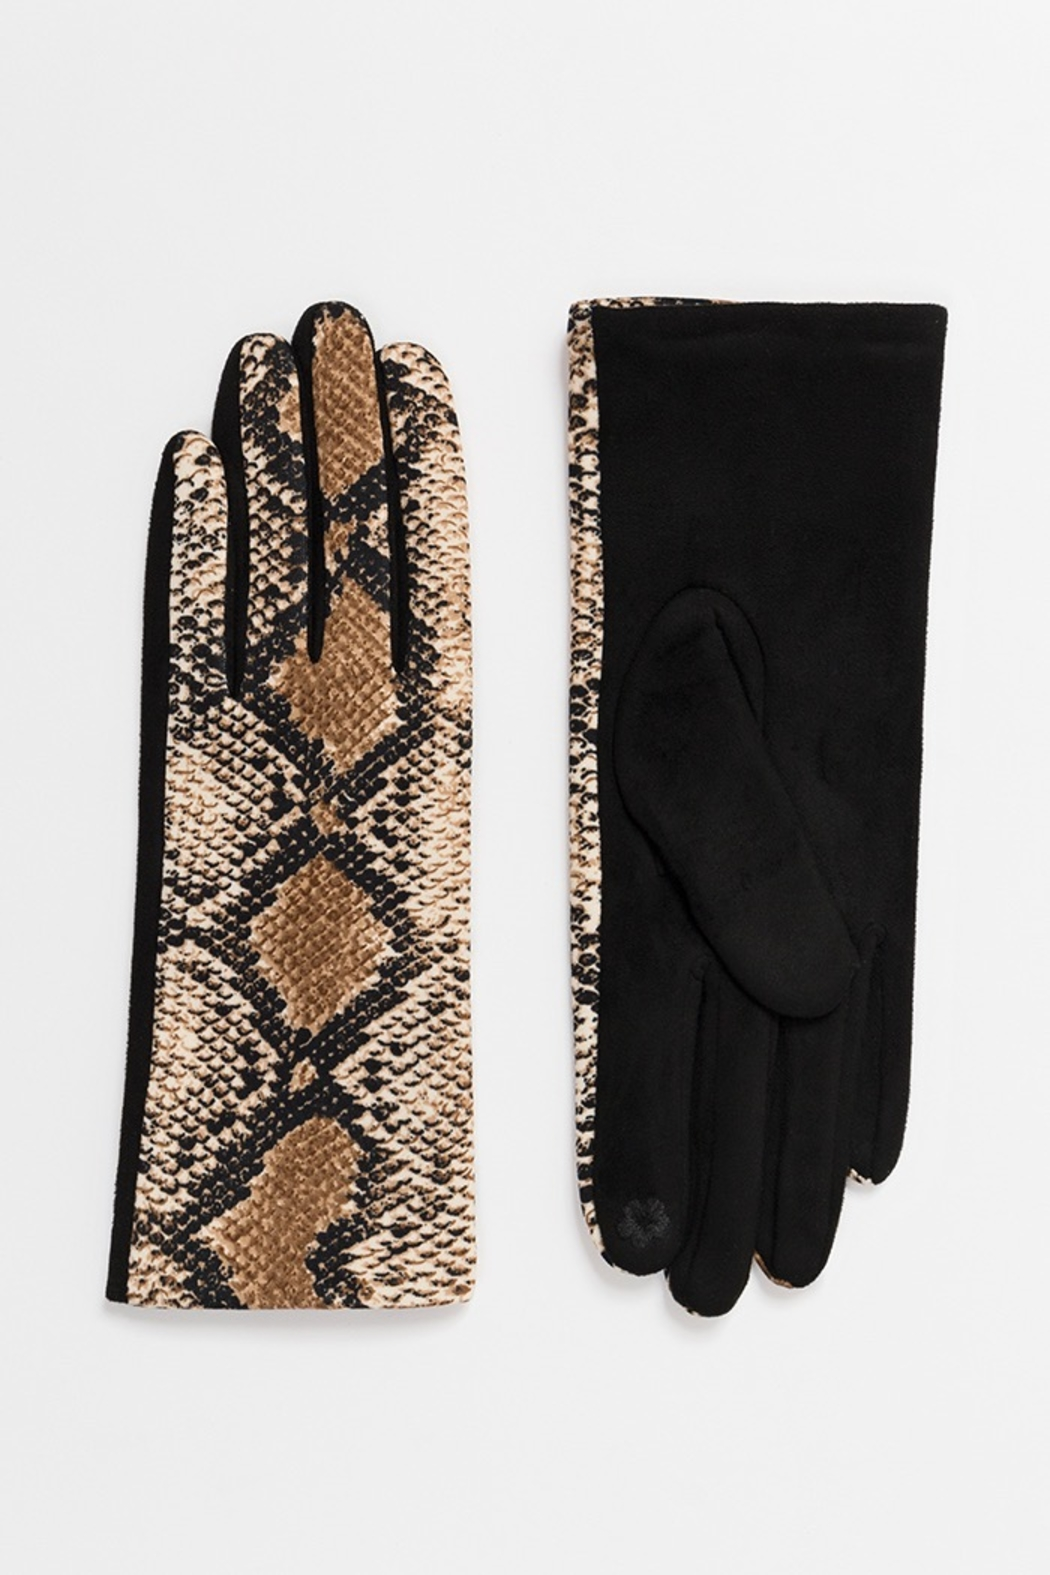 Pia Rossini SNAKE PRINT GLOVES - Front Cropped Image